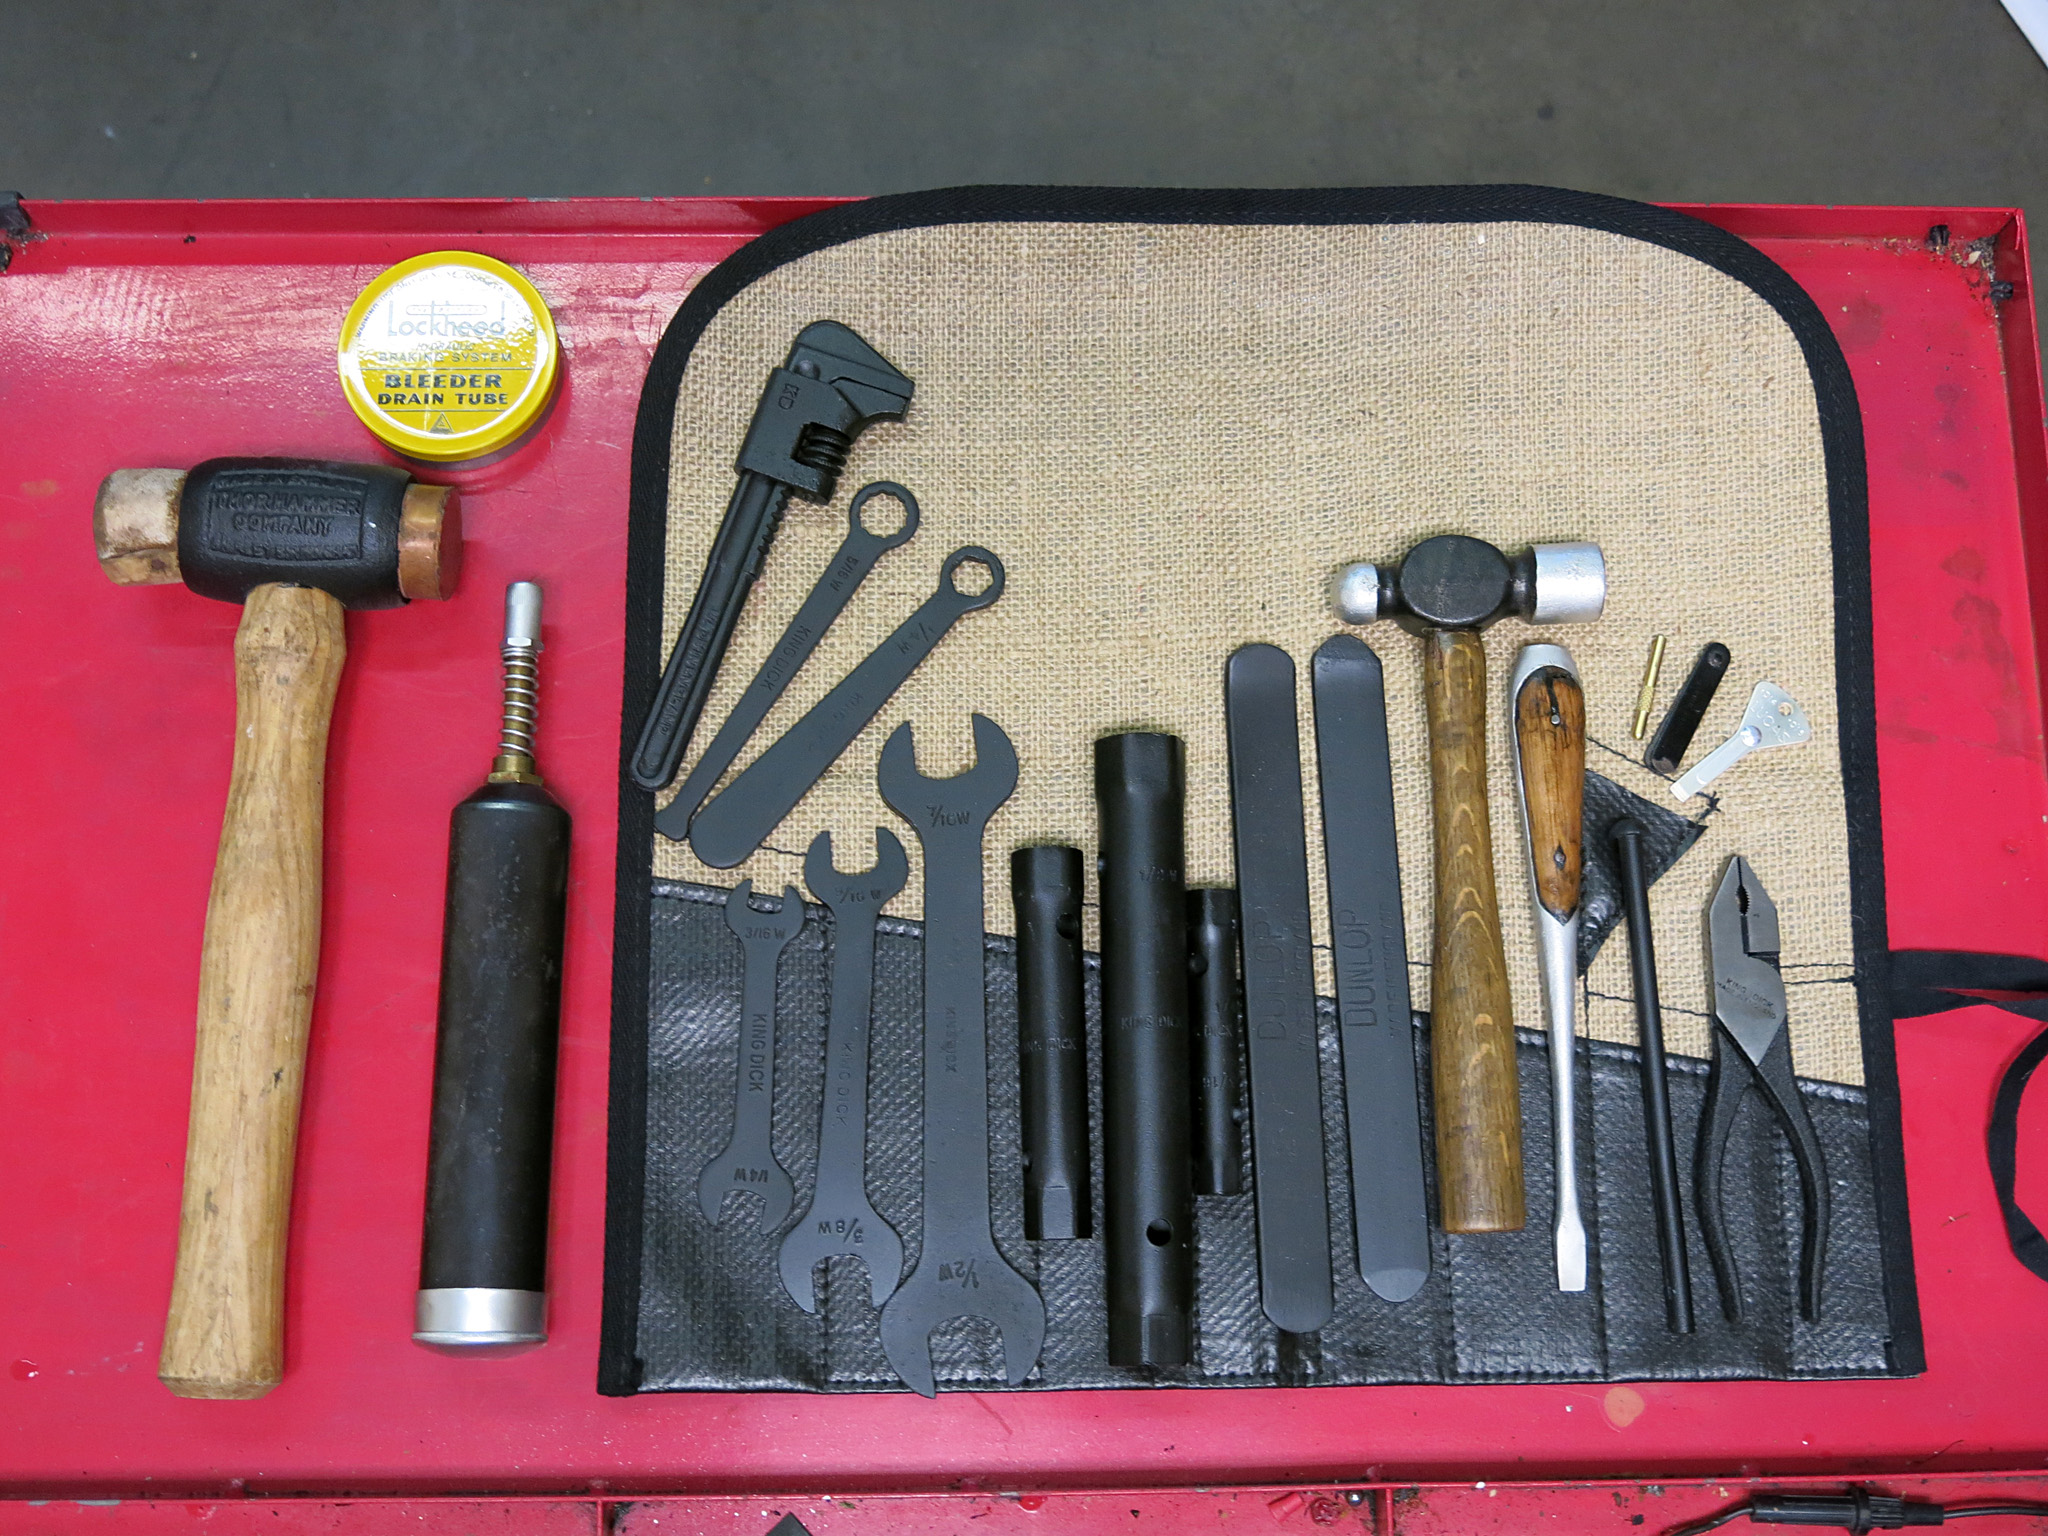 Didn't Mg midget tools PUTITA